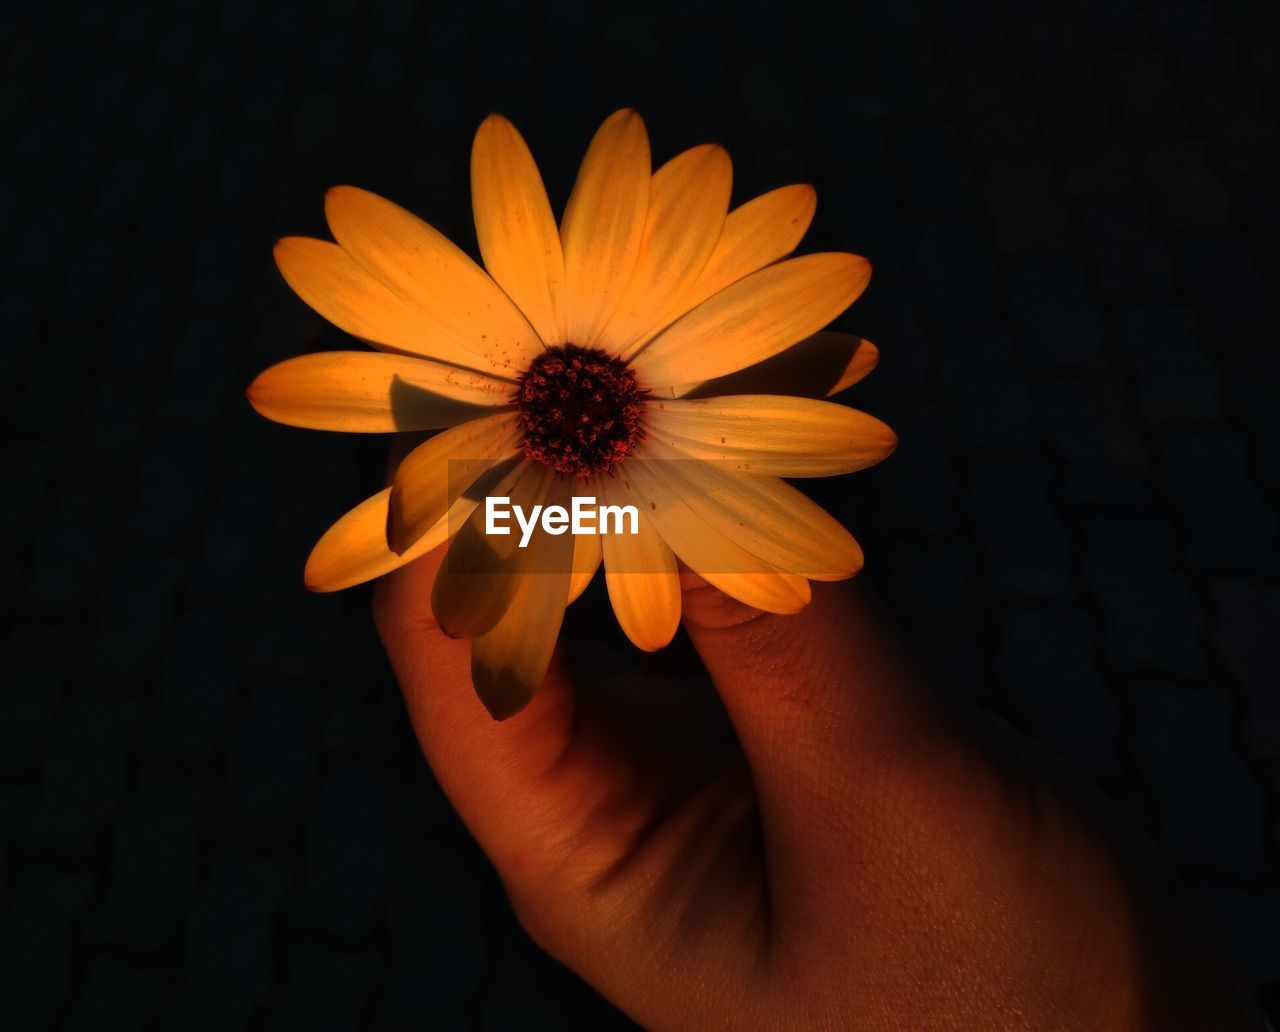 flower, flowering plant, human hand, one person, fragility, human body part, vulnerability, hand, freshness, close-up, flower head, inflorescence, petal, beauty in nature, holding, pollen, plant, real people, lifestyles, body part, finger, black background